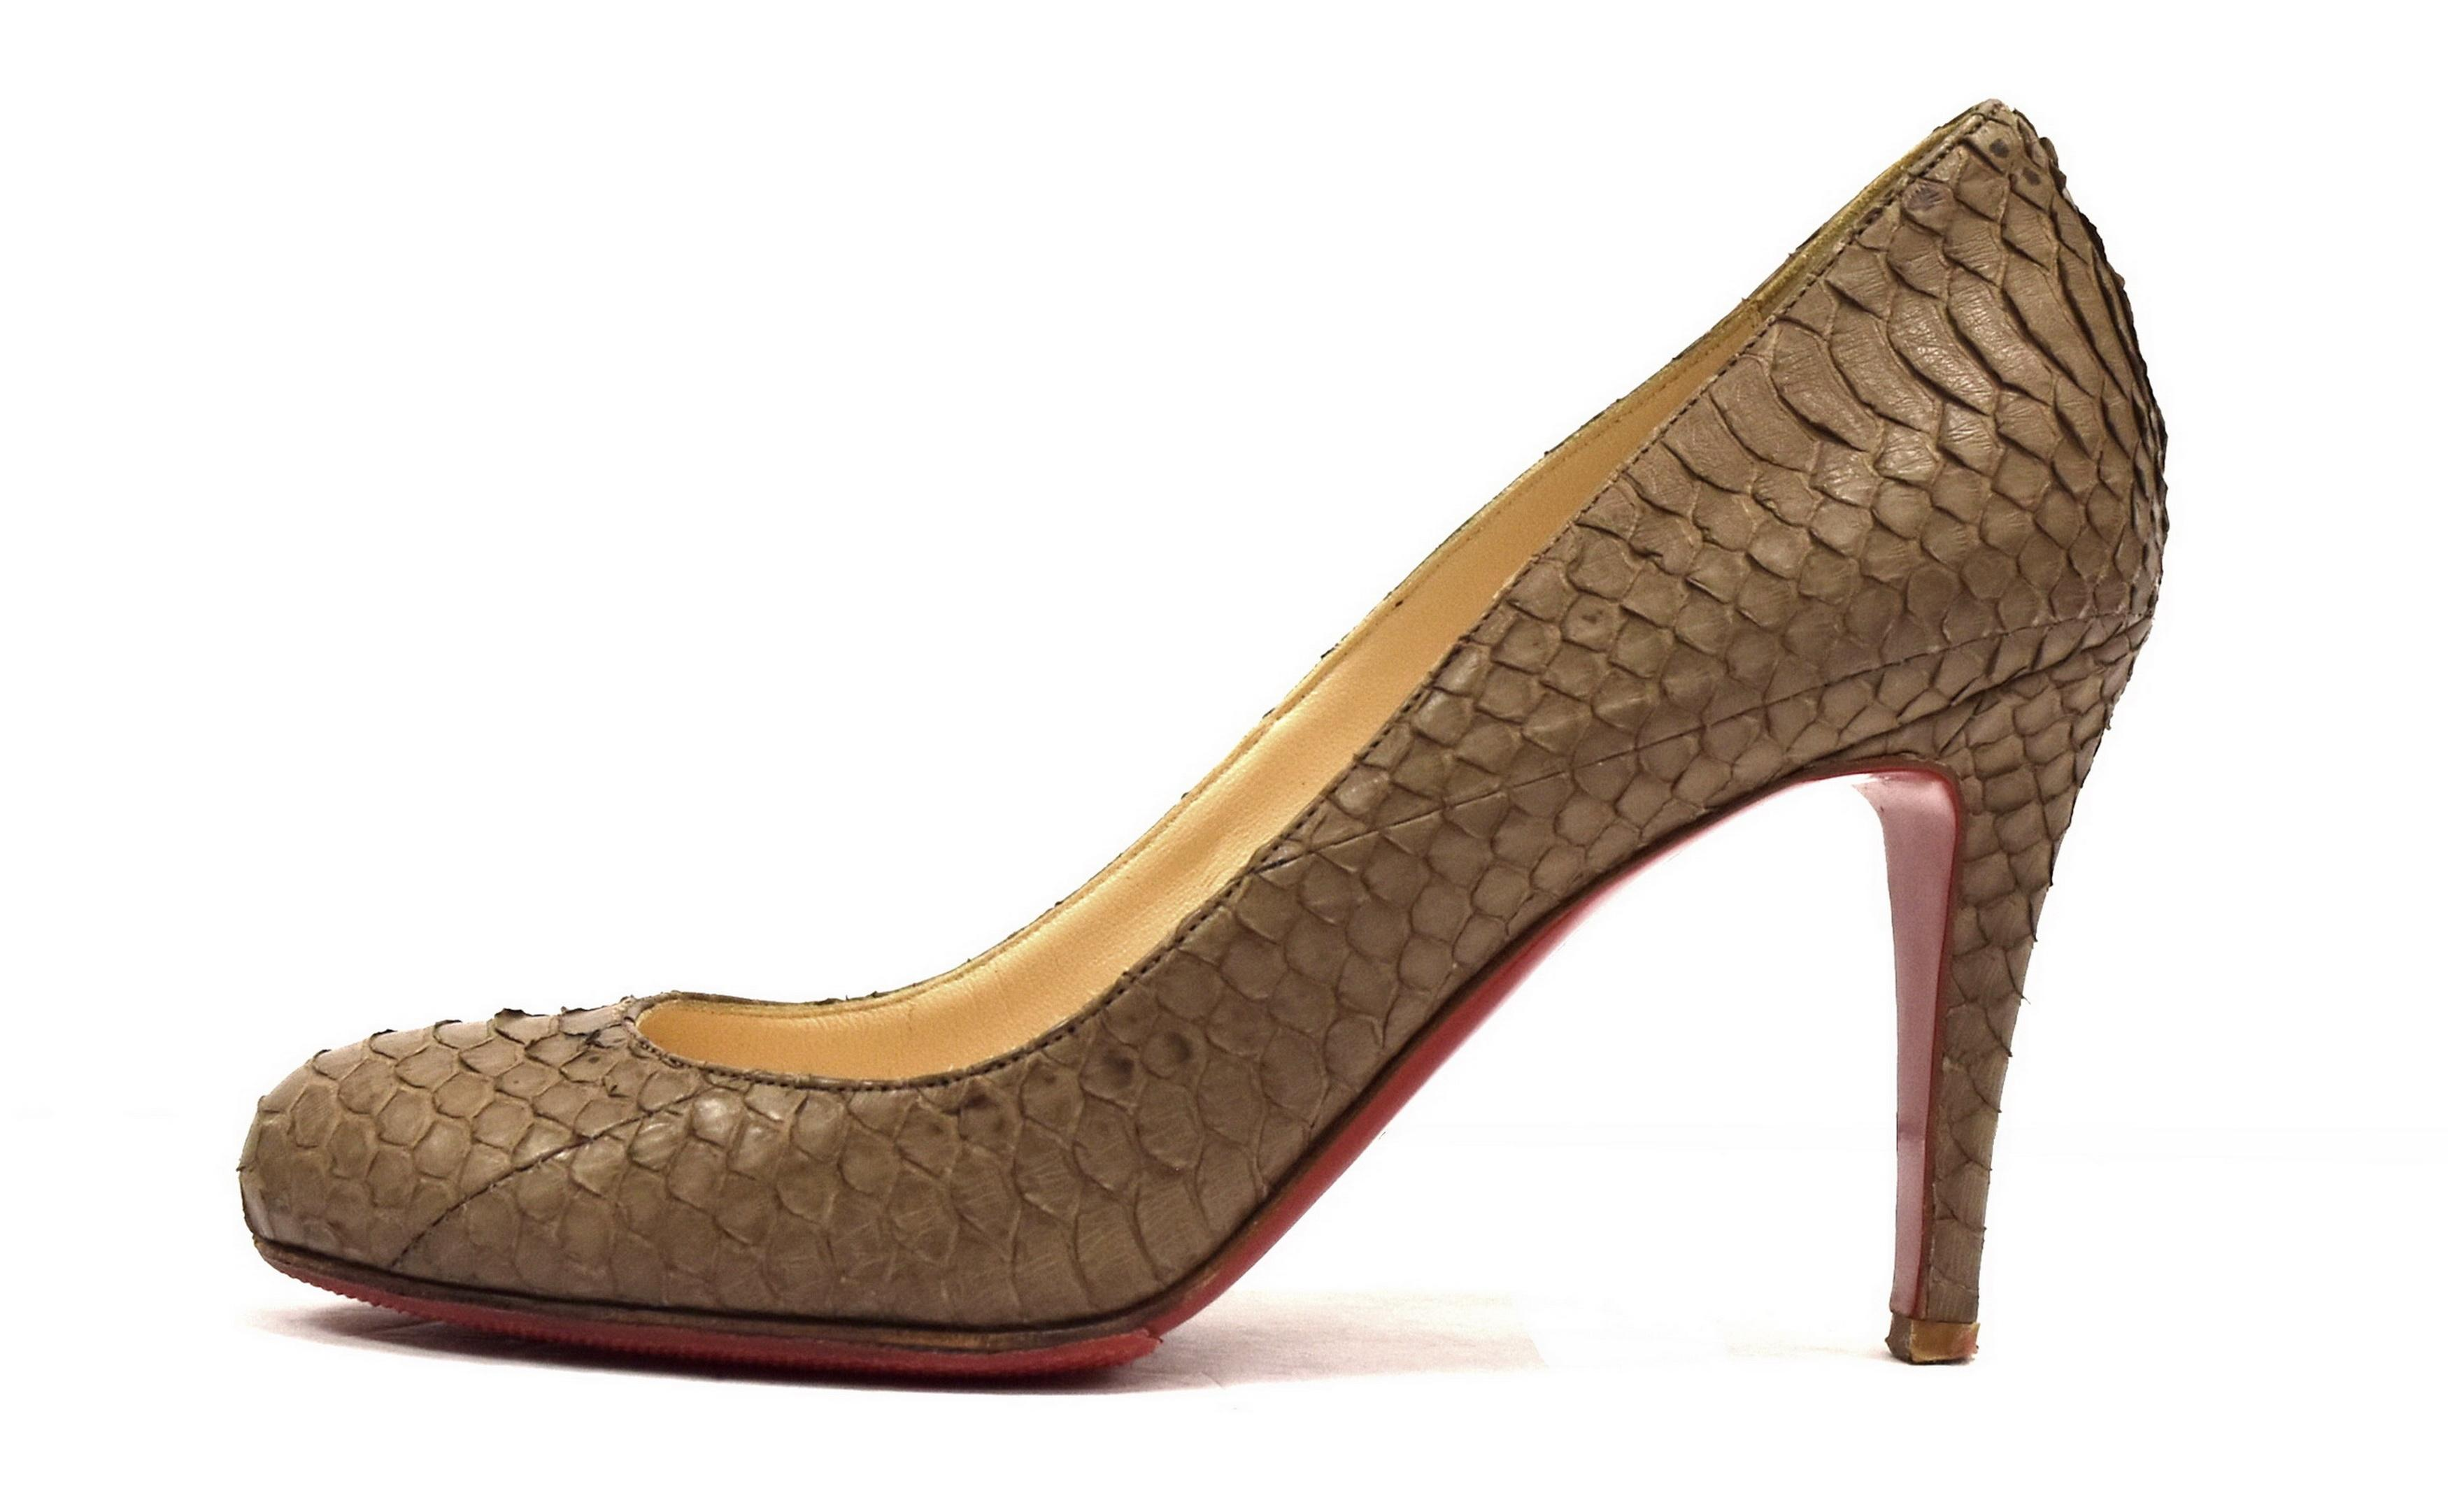 Christian Louboutin Brown Ron Ron 85 Watersnake Pumps Size EU 36 (Approx. US 6) Regular (M, B)